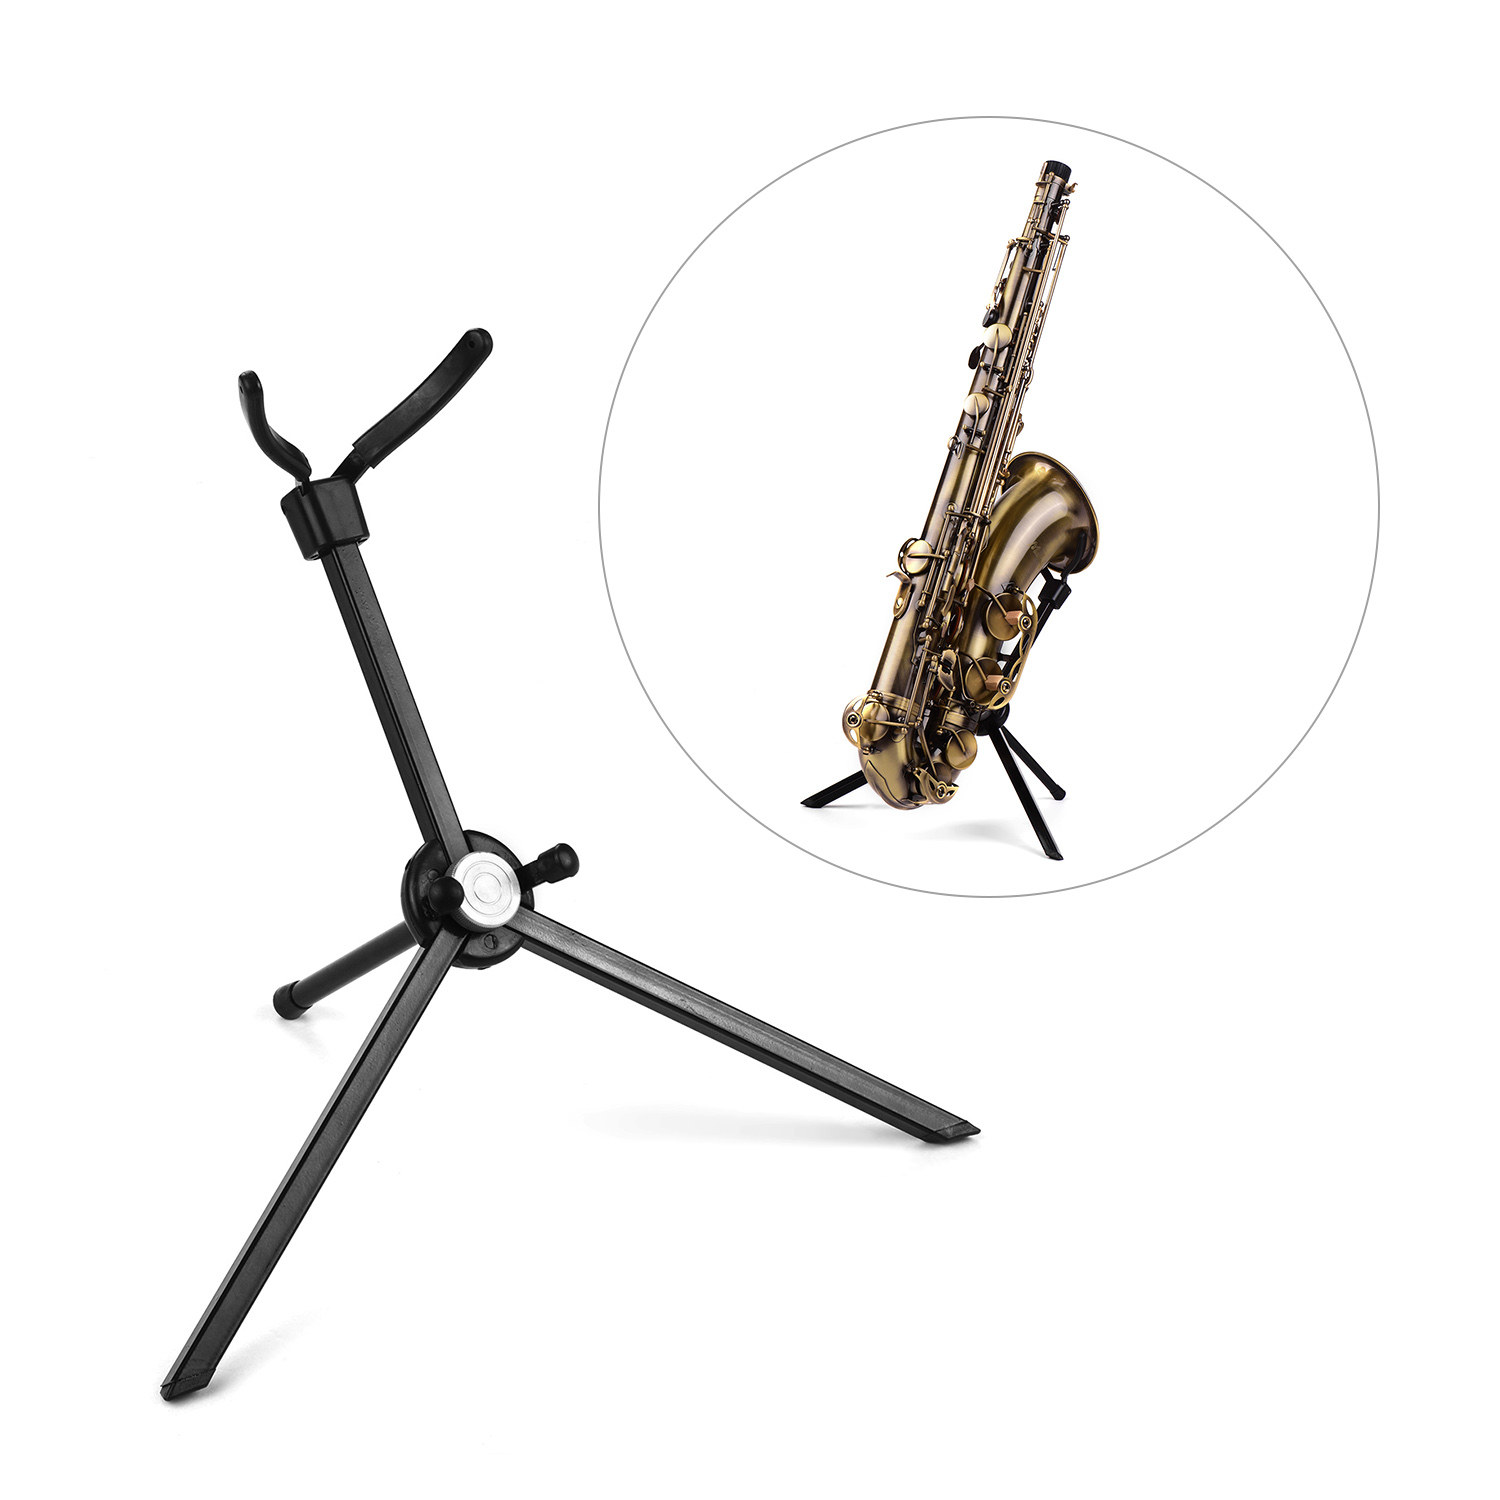 Portable Tenor Saxophone Stand Sax Floor Stand Holder Stainless Steel Foldable With Carry Bag